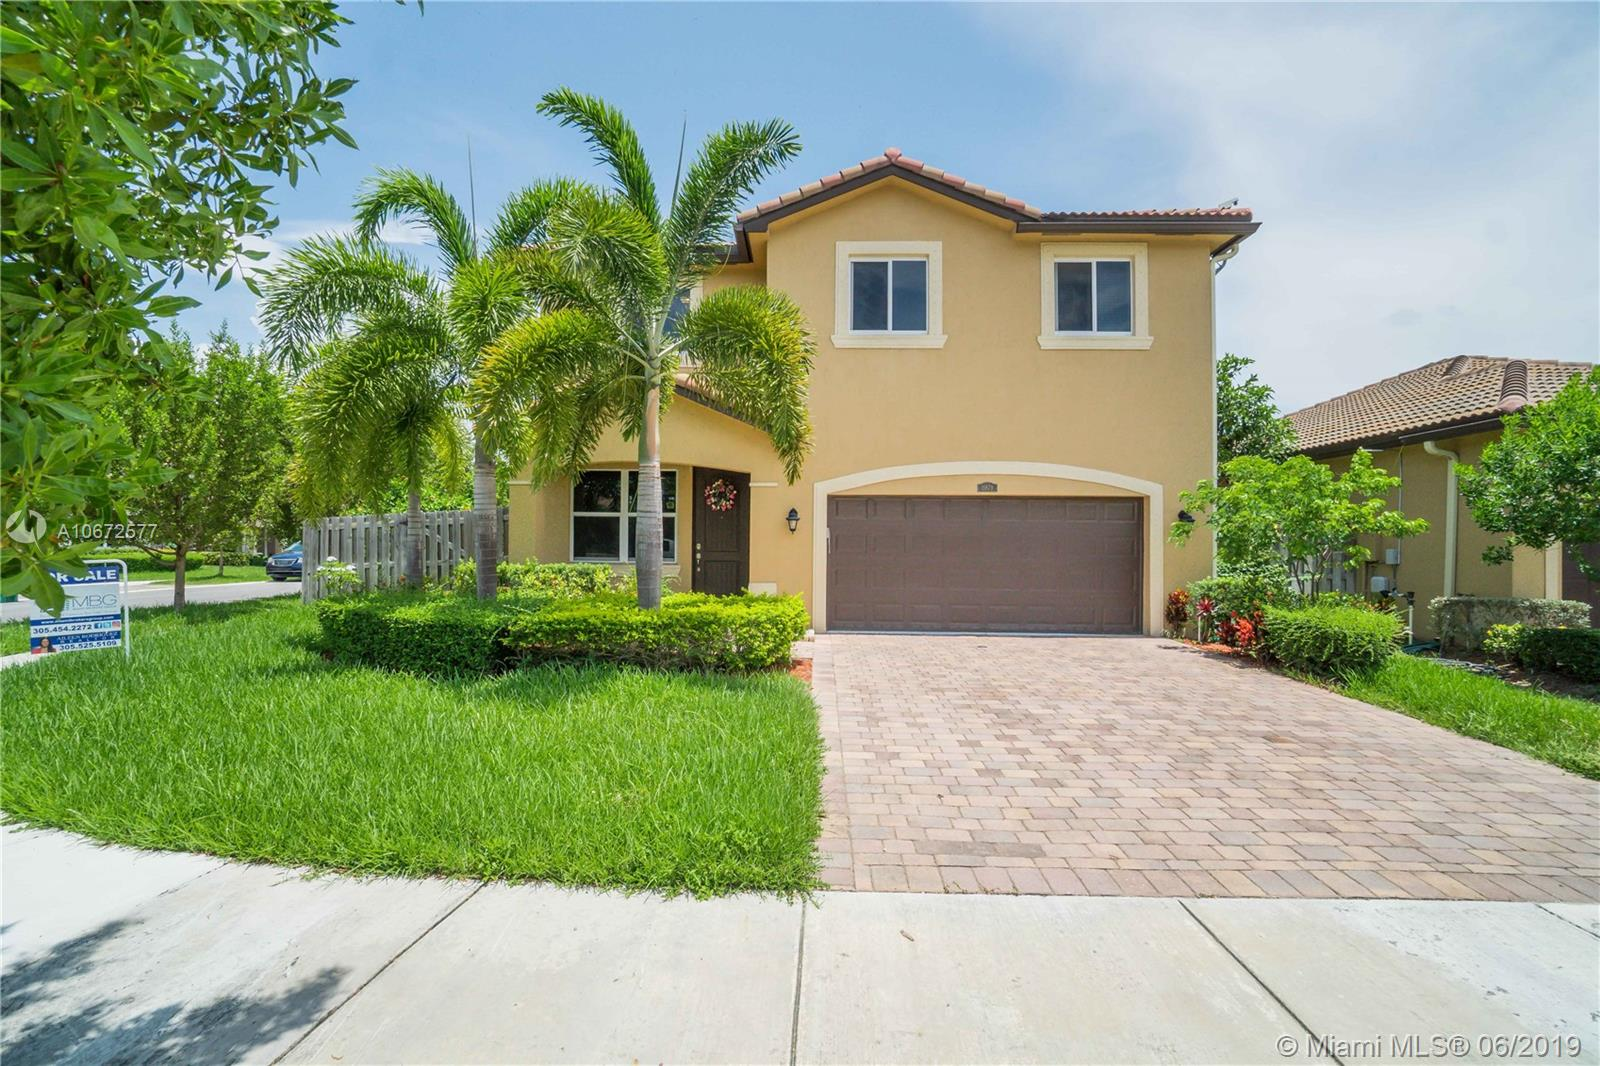 11879 SW 250th Ter, Homestead, FL 33032 - Homestead, FL real estate listing